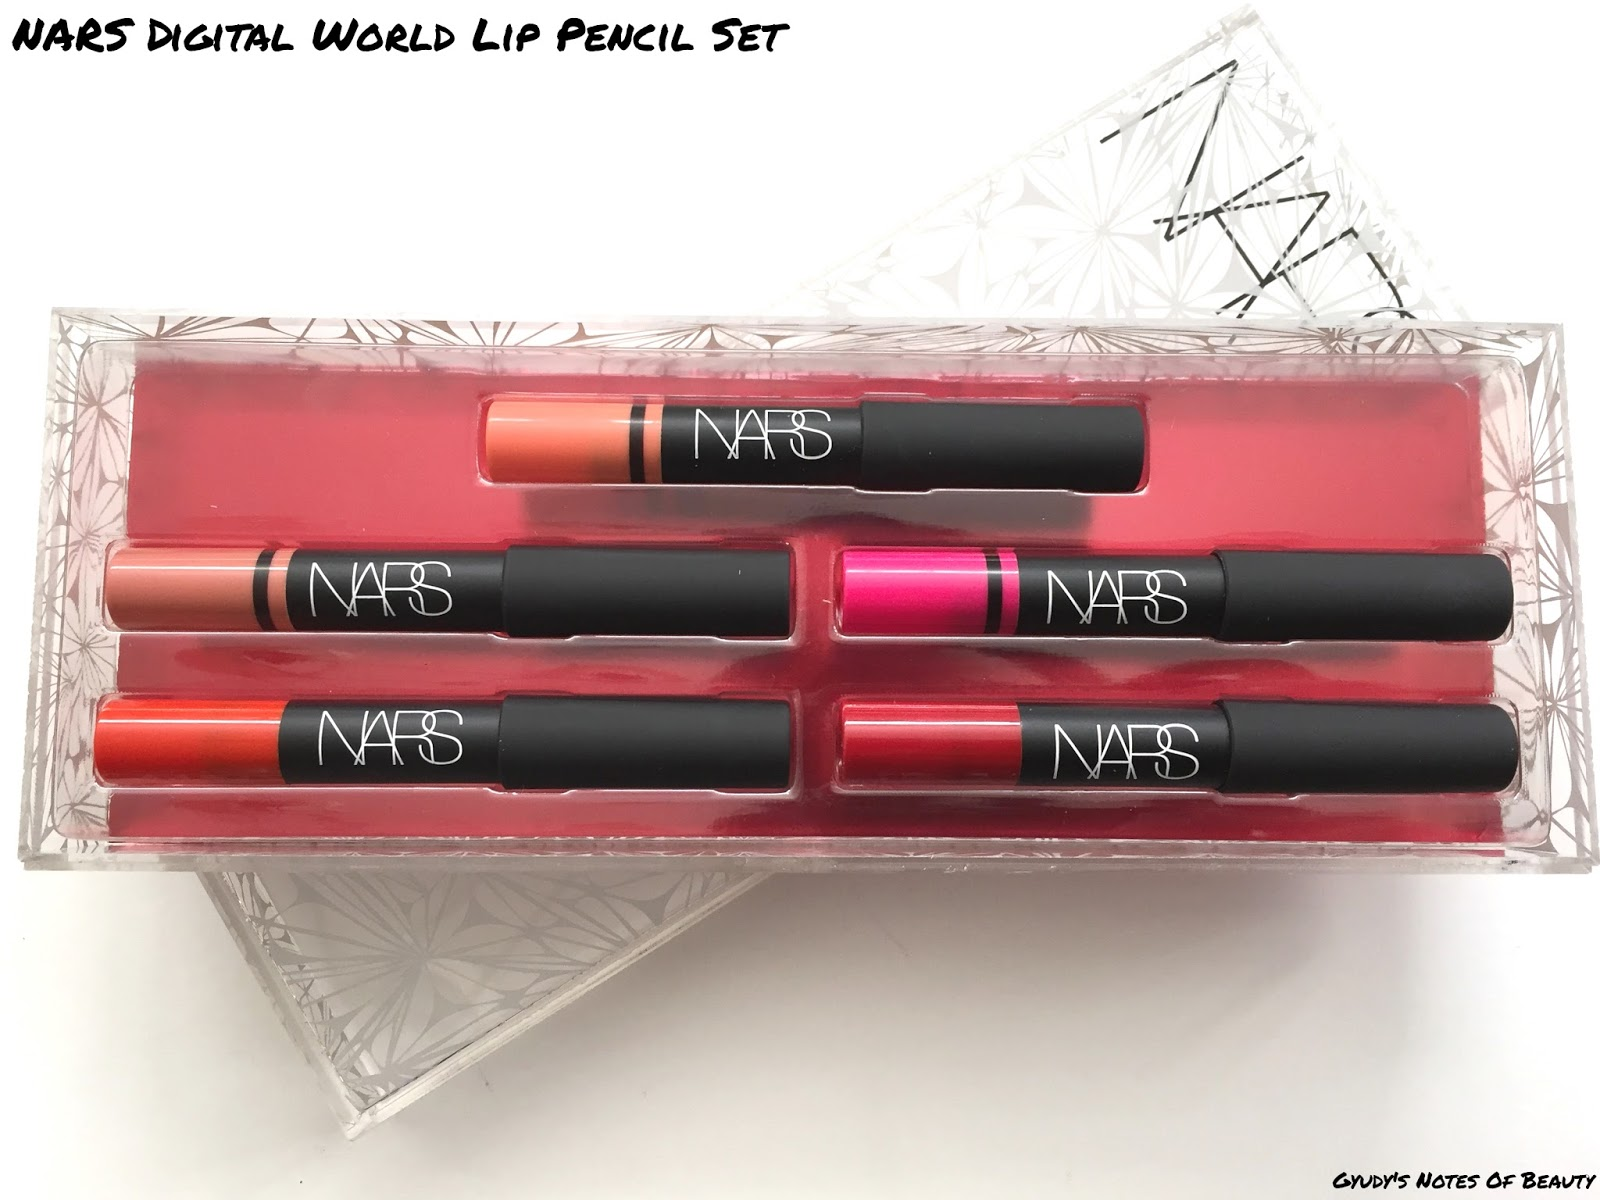 NARS Digital World